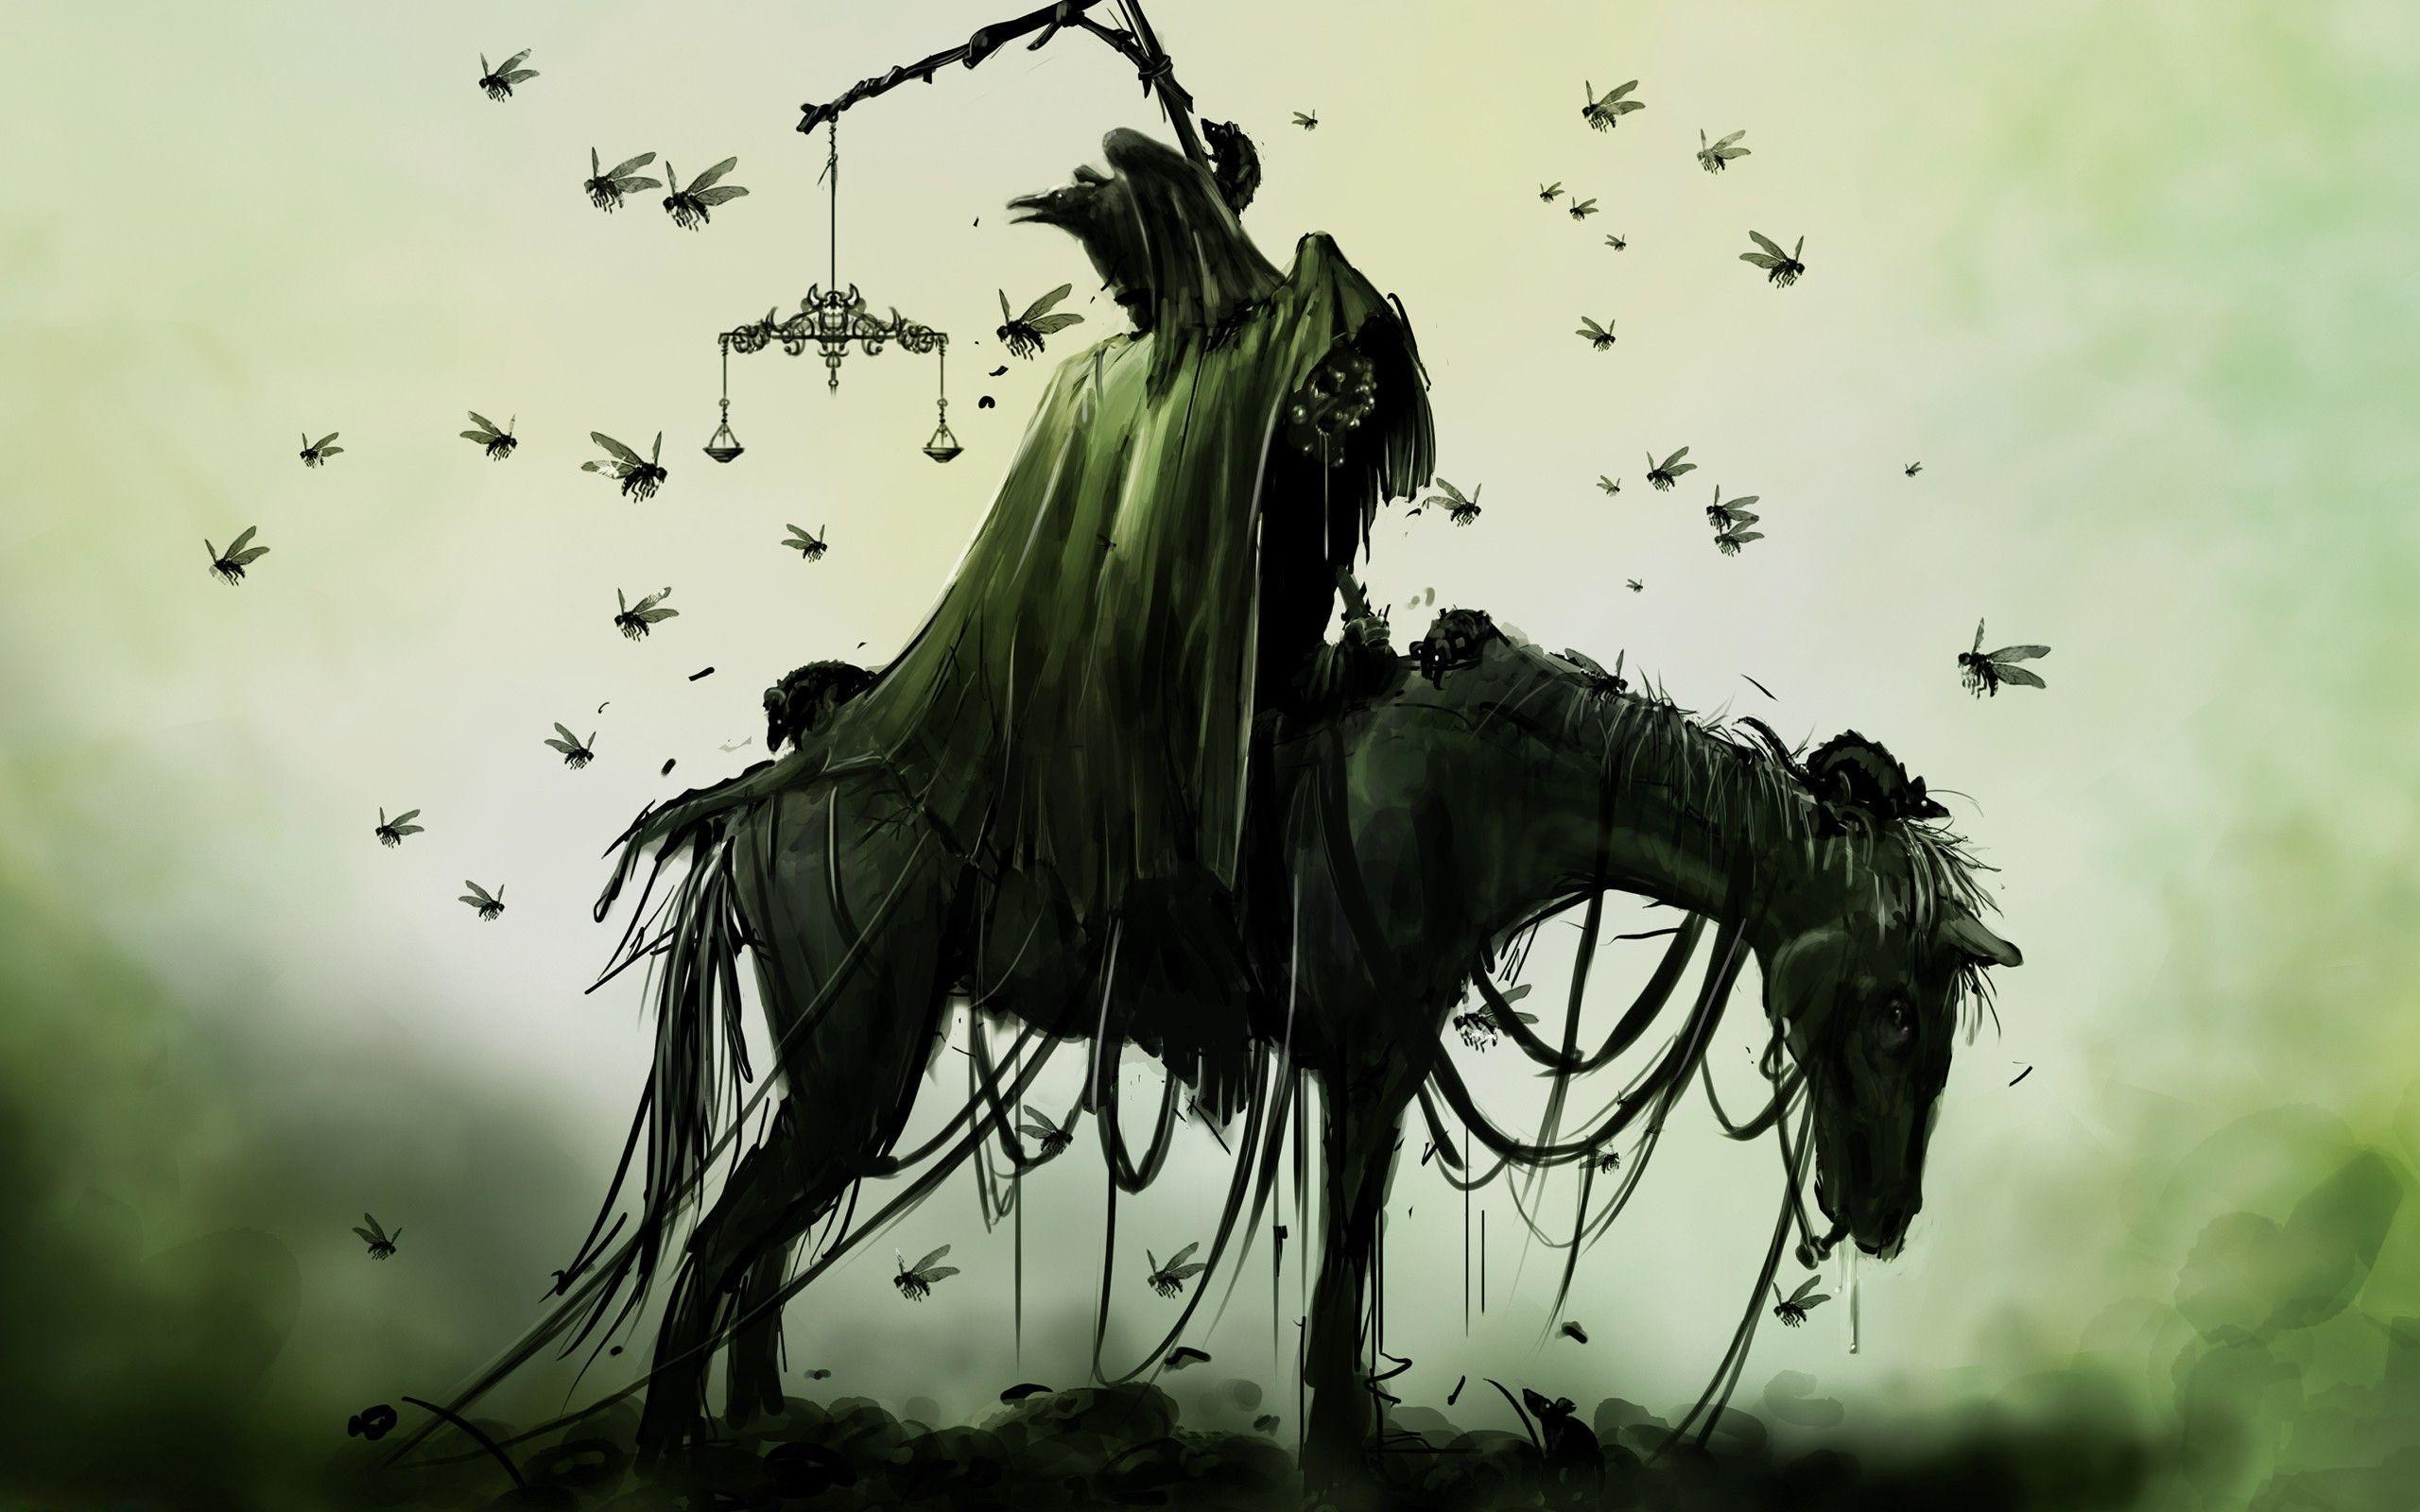 2560x1600 Creepy knight on the horse